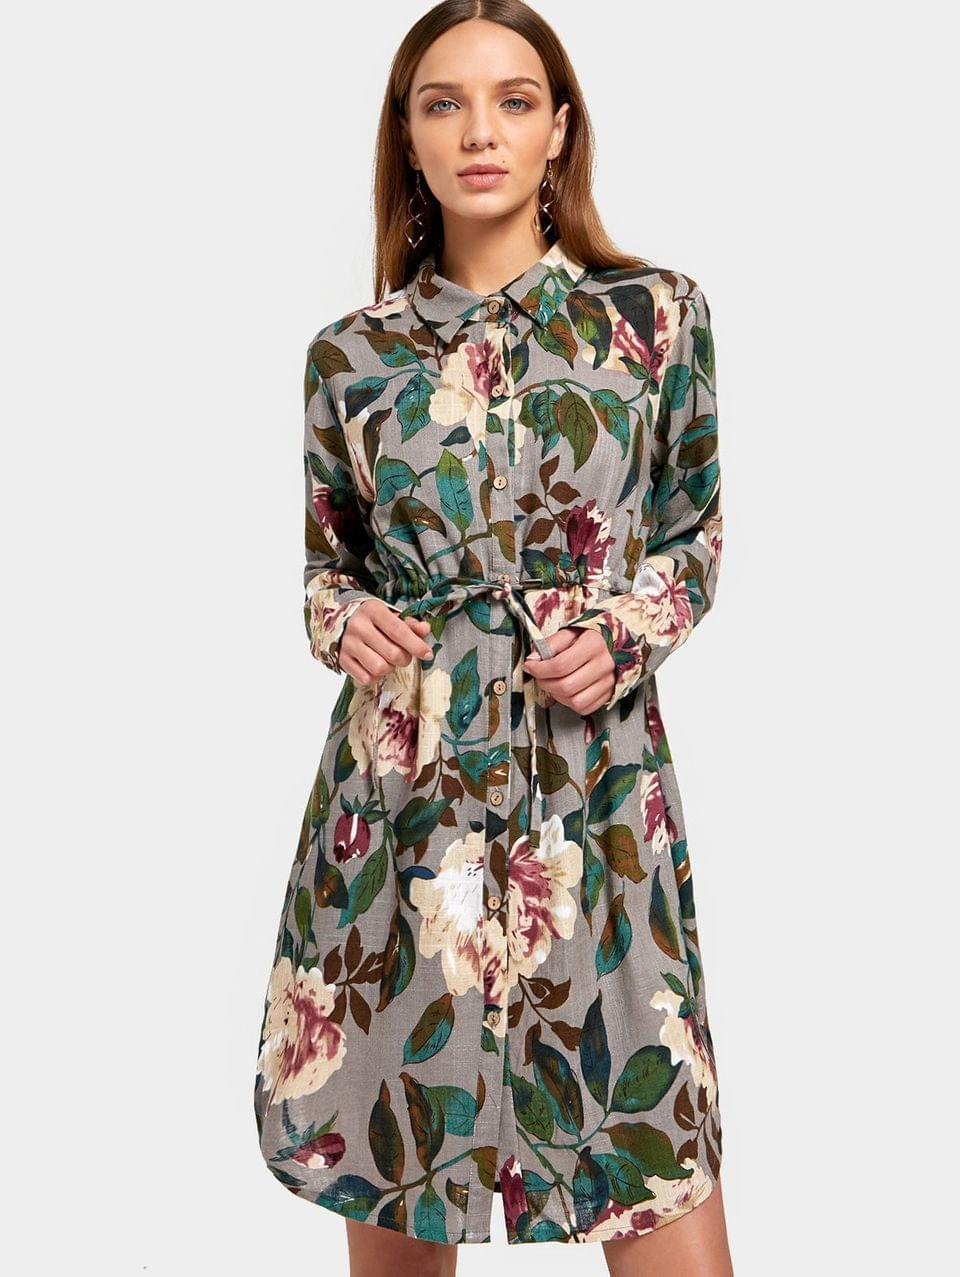 Women's Button Up Floral Print Shirt Dress - Floral M